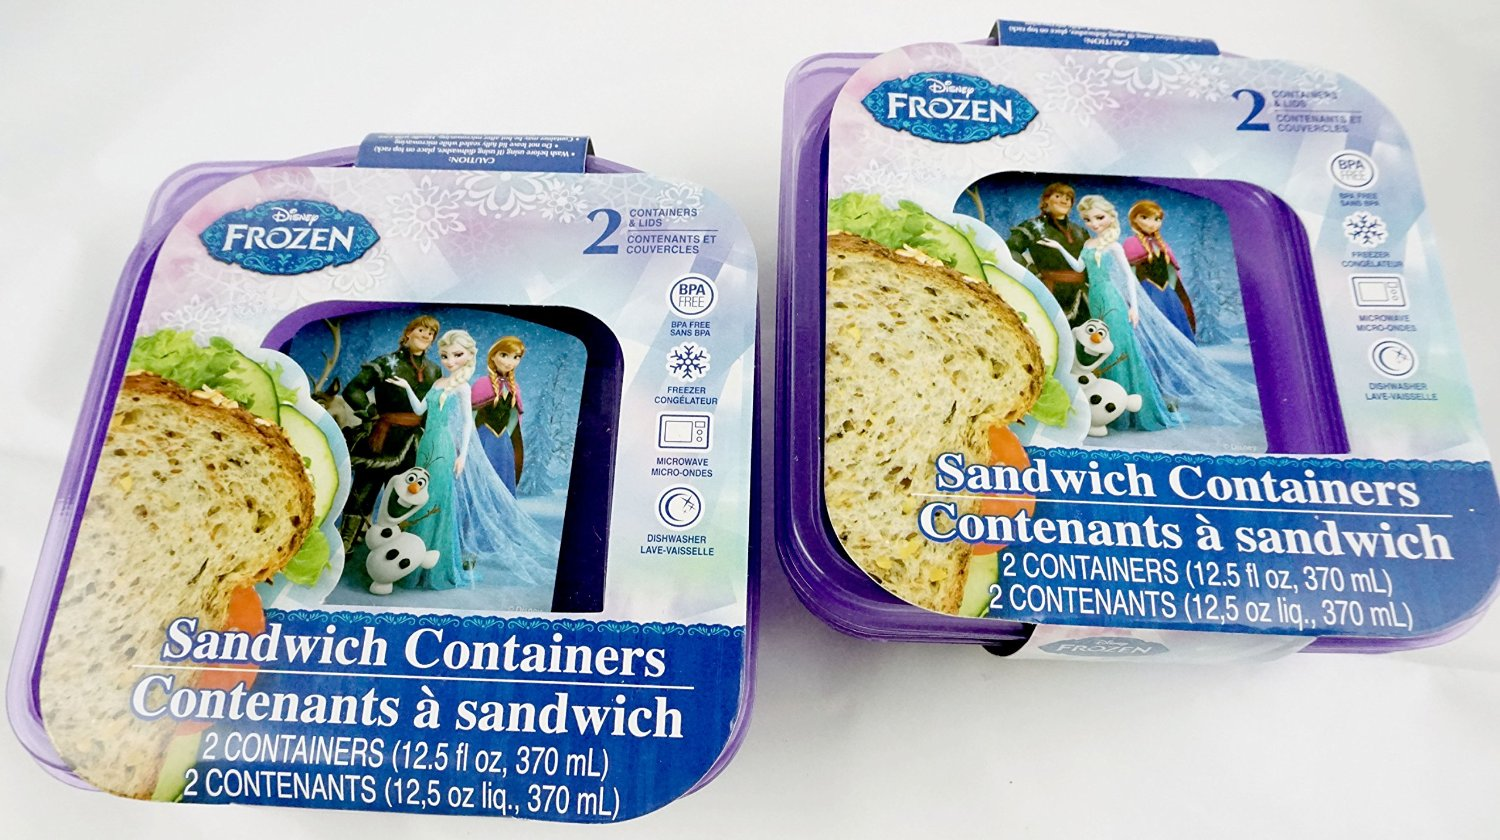 Disney Frozen Sandwich Containers 2 Pack Containing 2 Containers Each Featuring Elsa, Anna, Kristoff, Hans, Olaf and Sven - 4 Total Containers